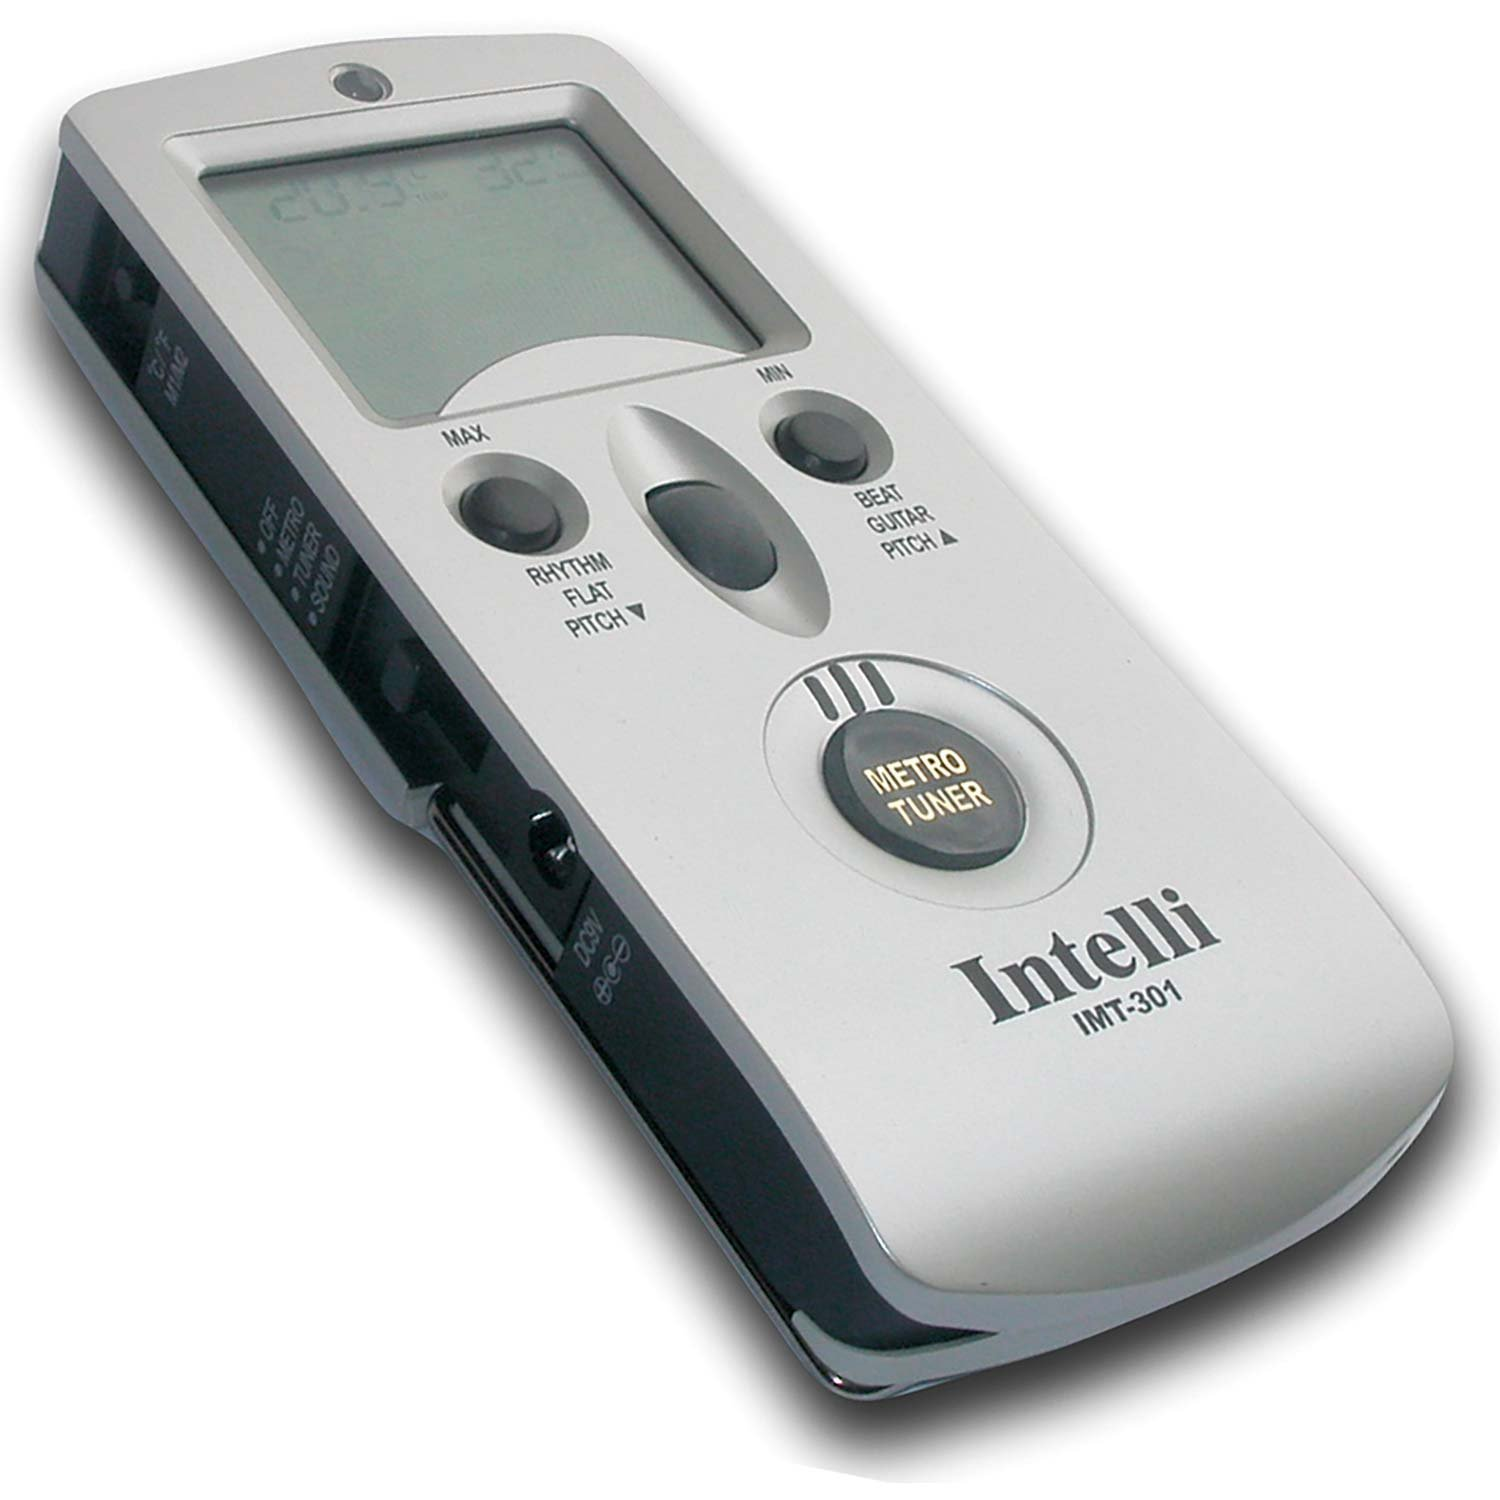 Intelli IMT-301 Digital Metronome and Tuner